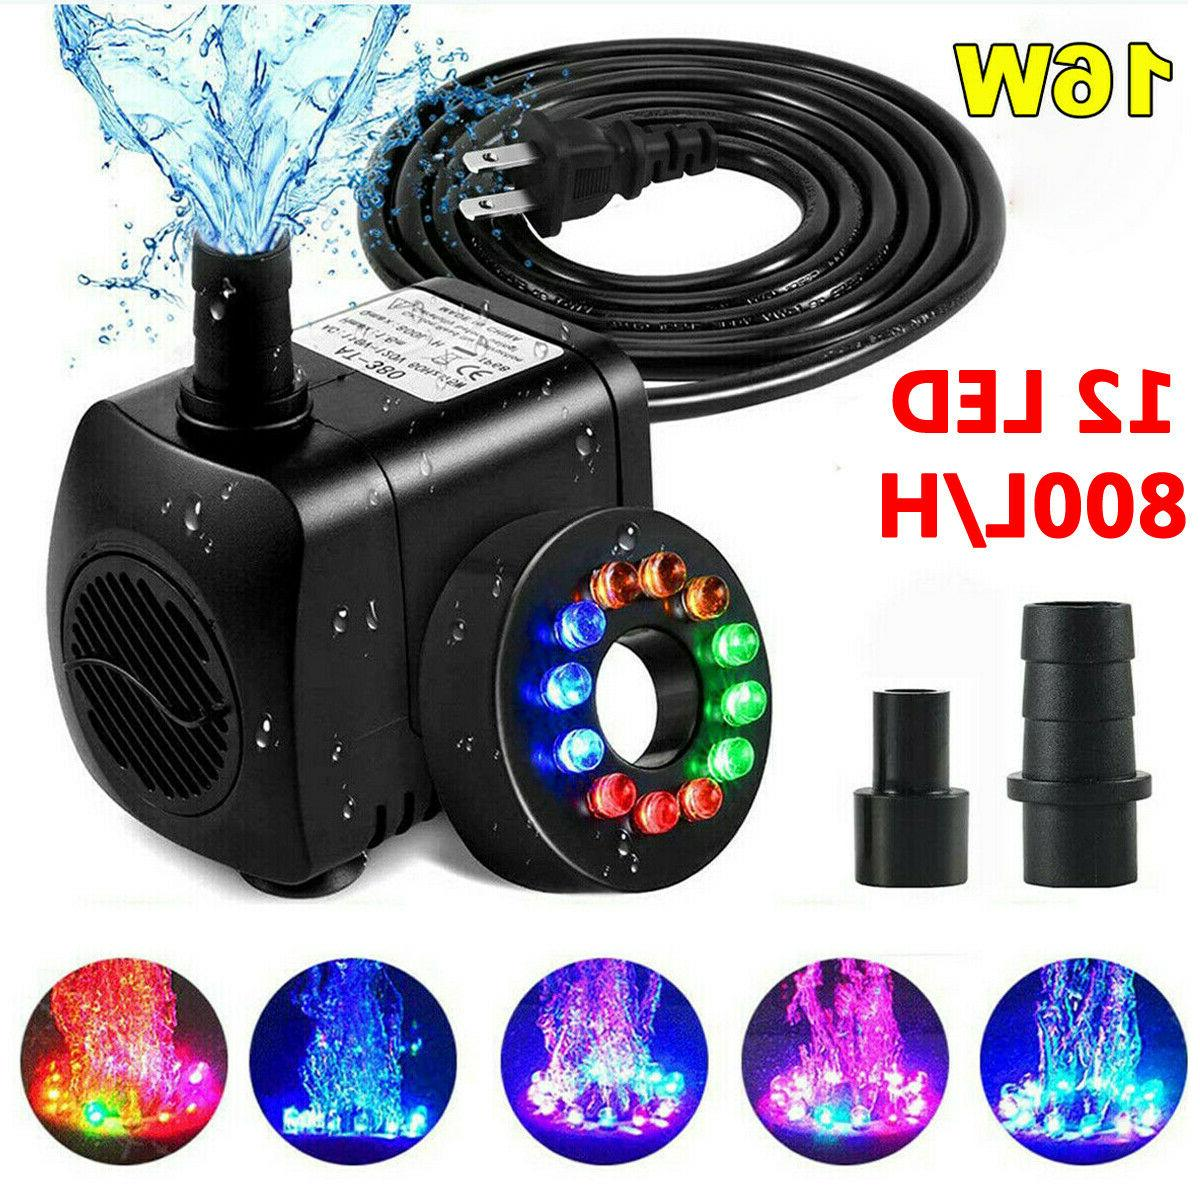 submersible water pump w 12 led light